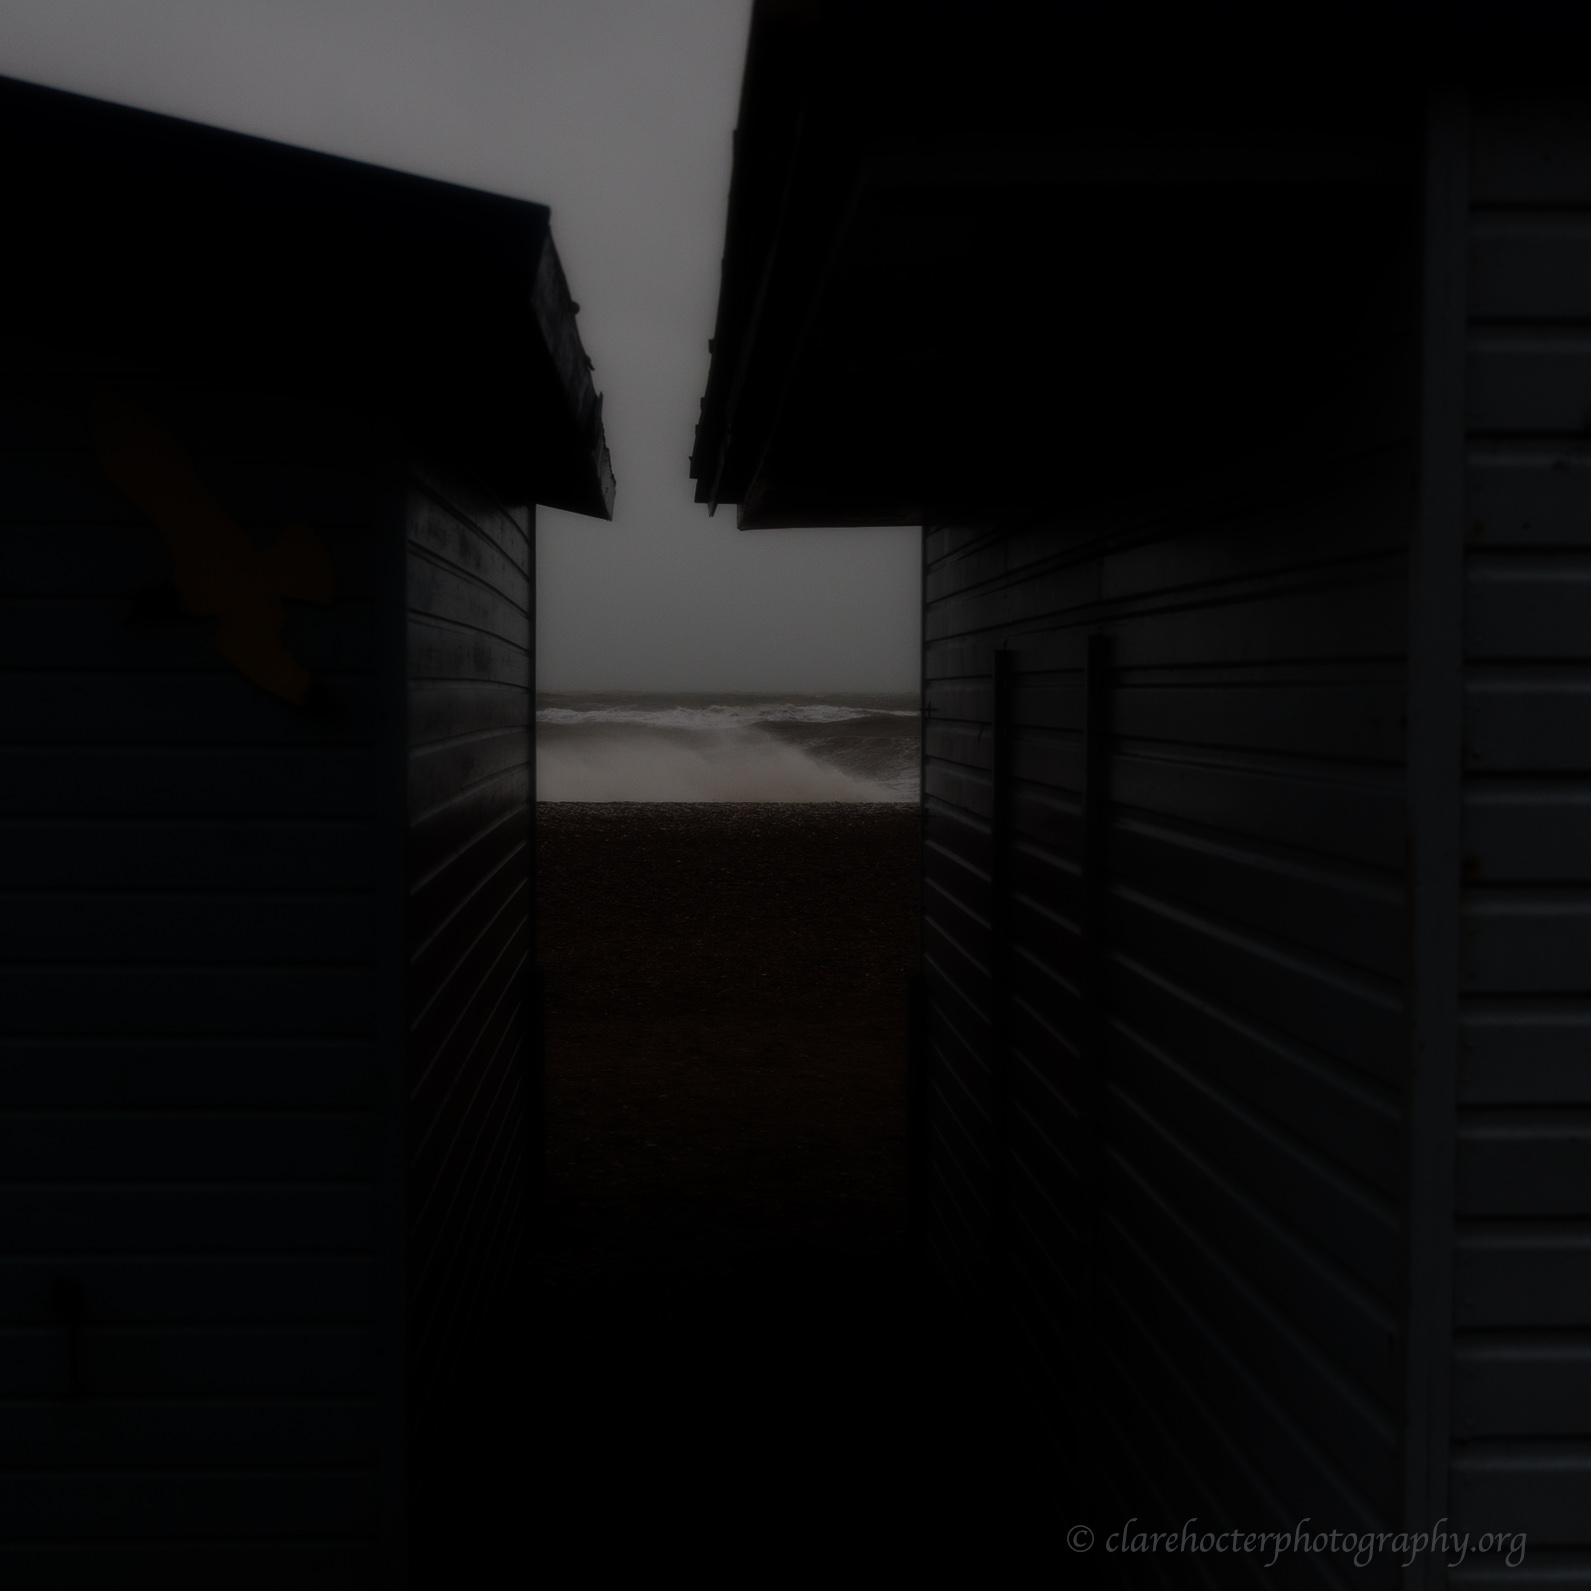 beach huts hastings, clare hocter photography, hastings photography